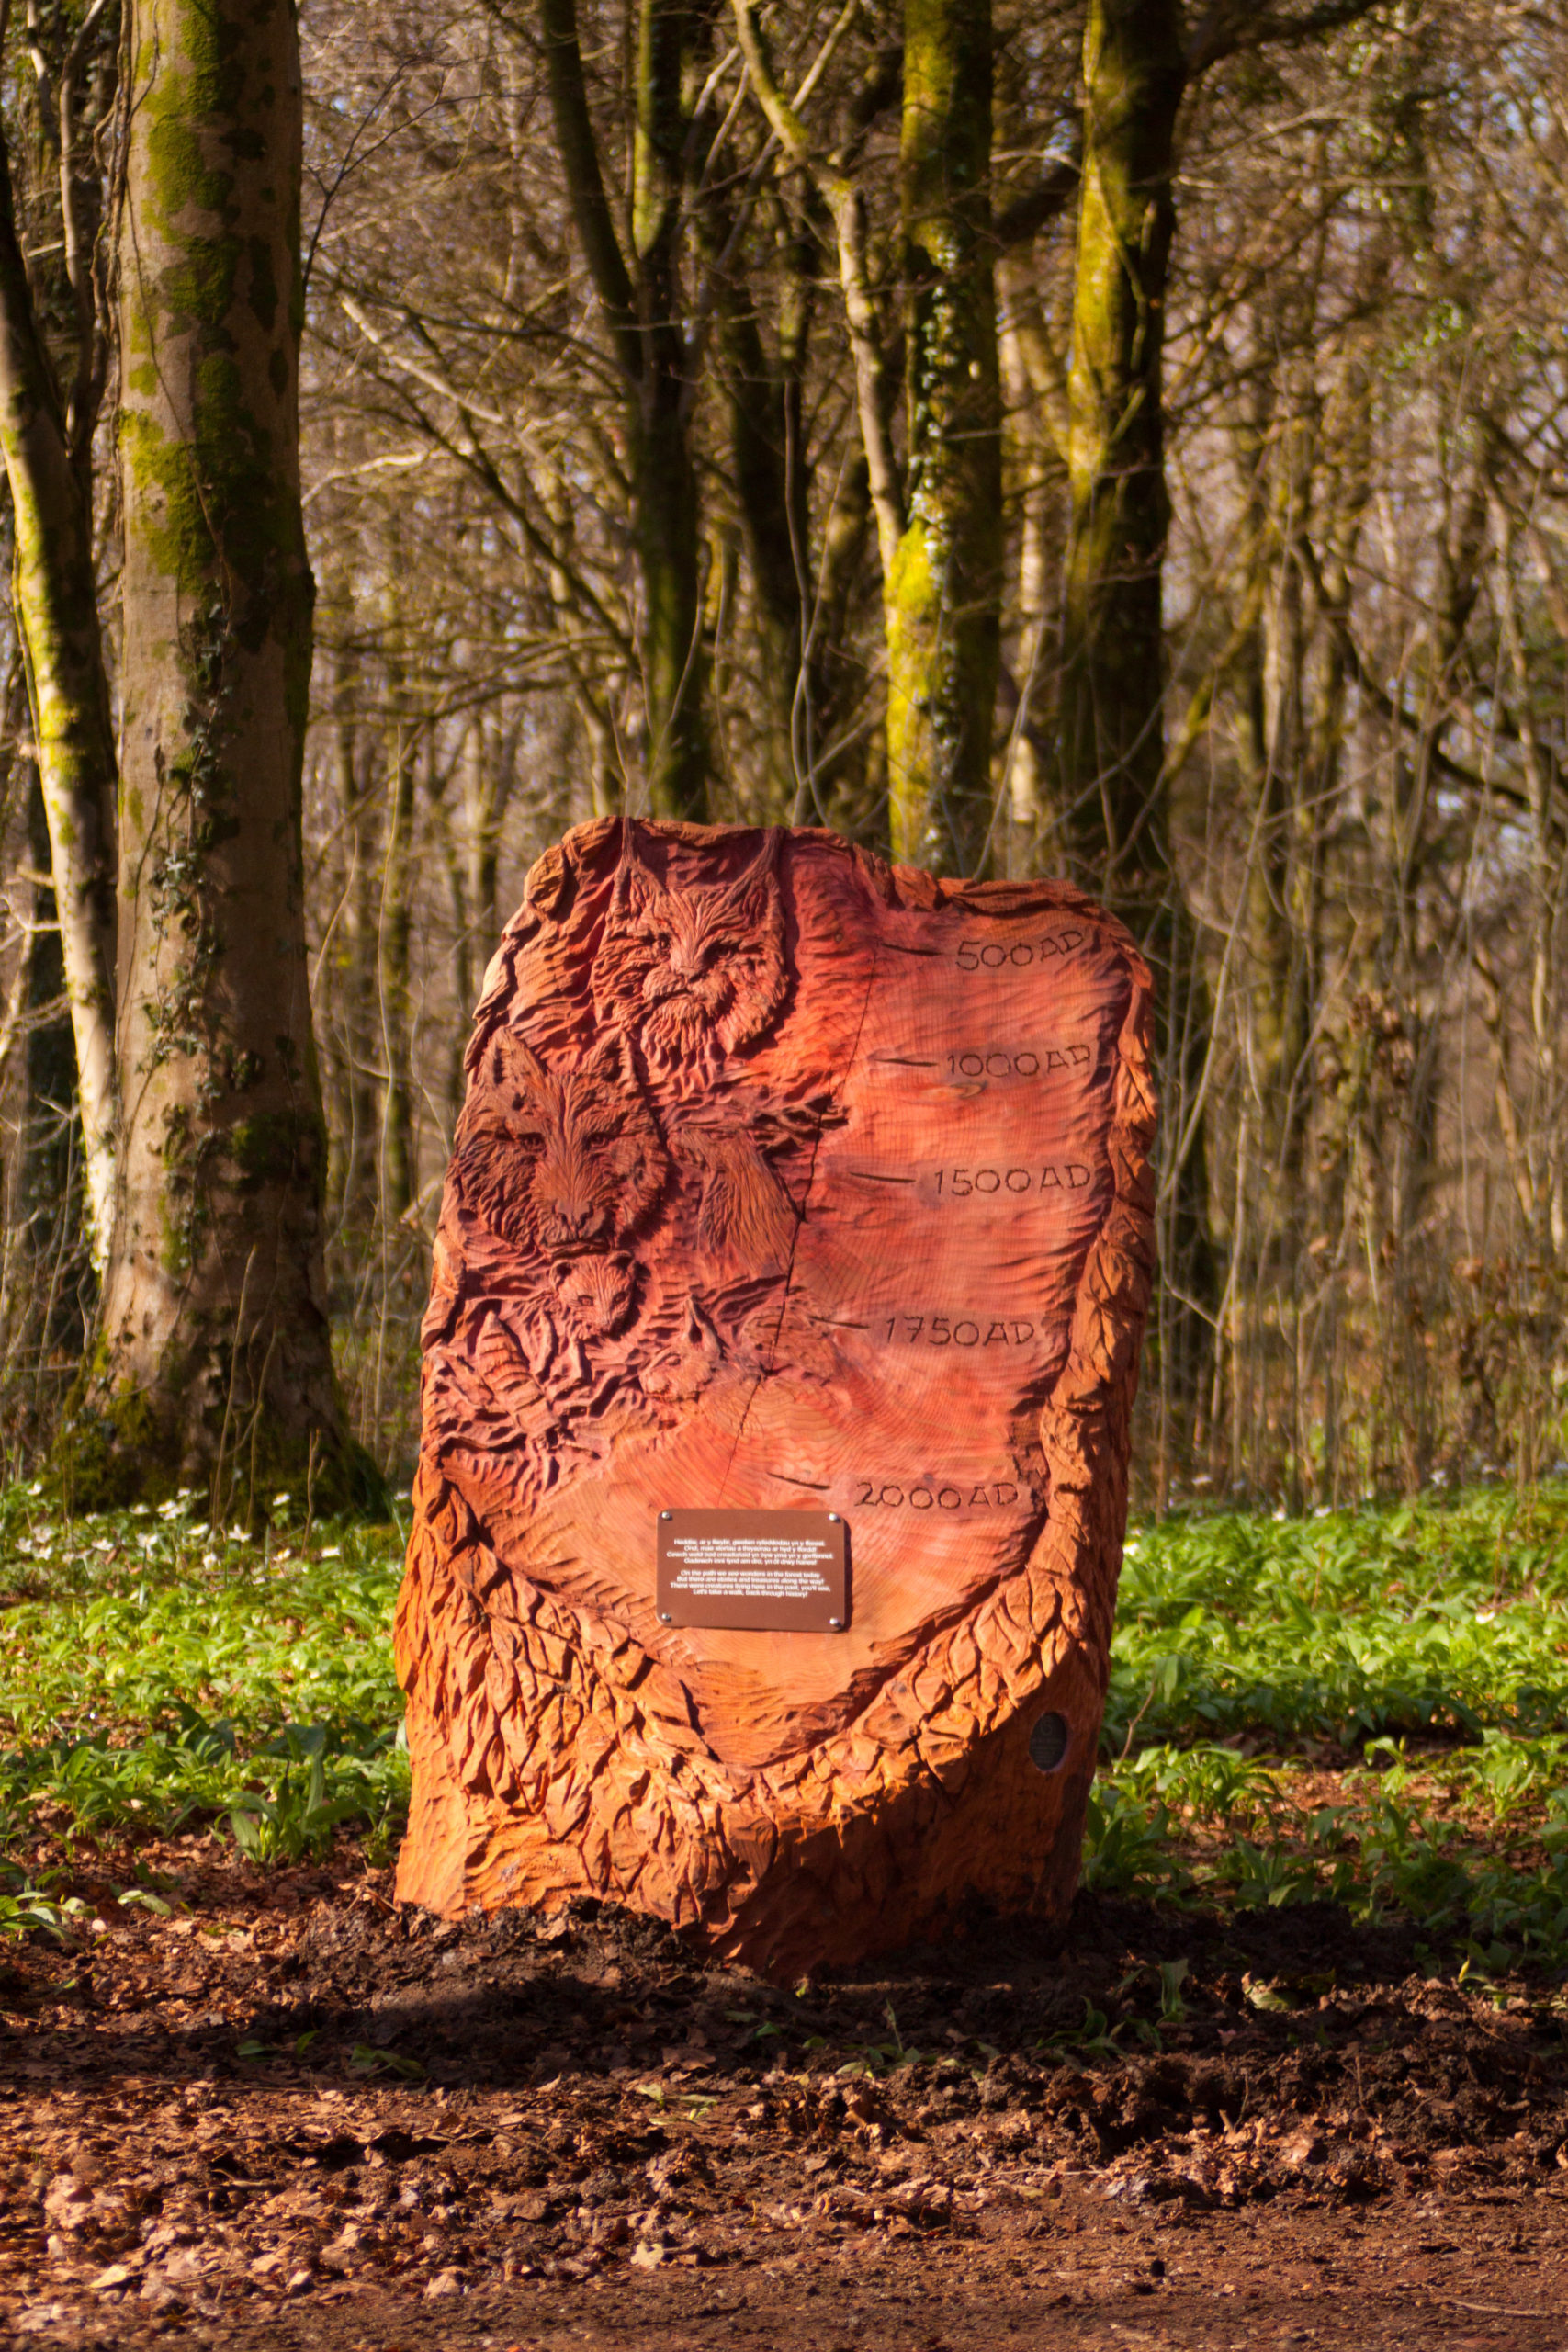 timeline from fforest fawr woodland sculpture trail carved from redwood, featuring wolf, lynx and pine marten